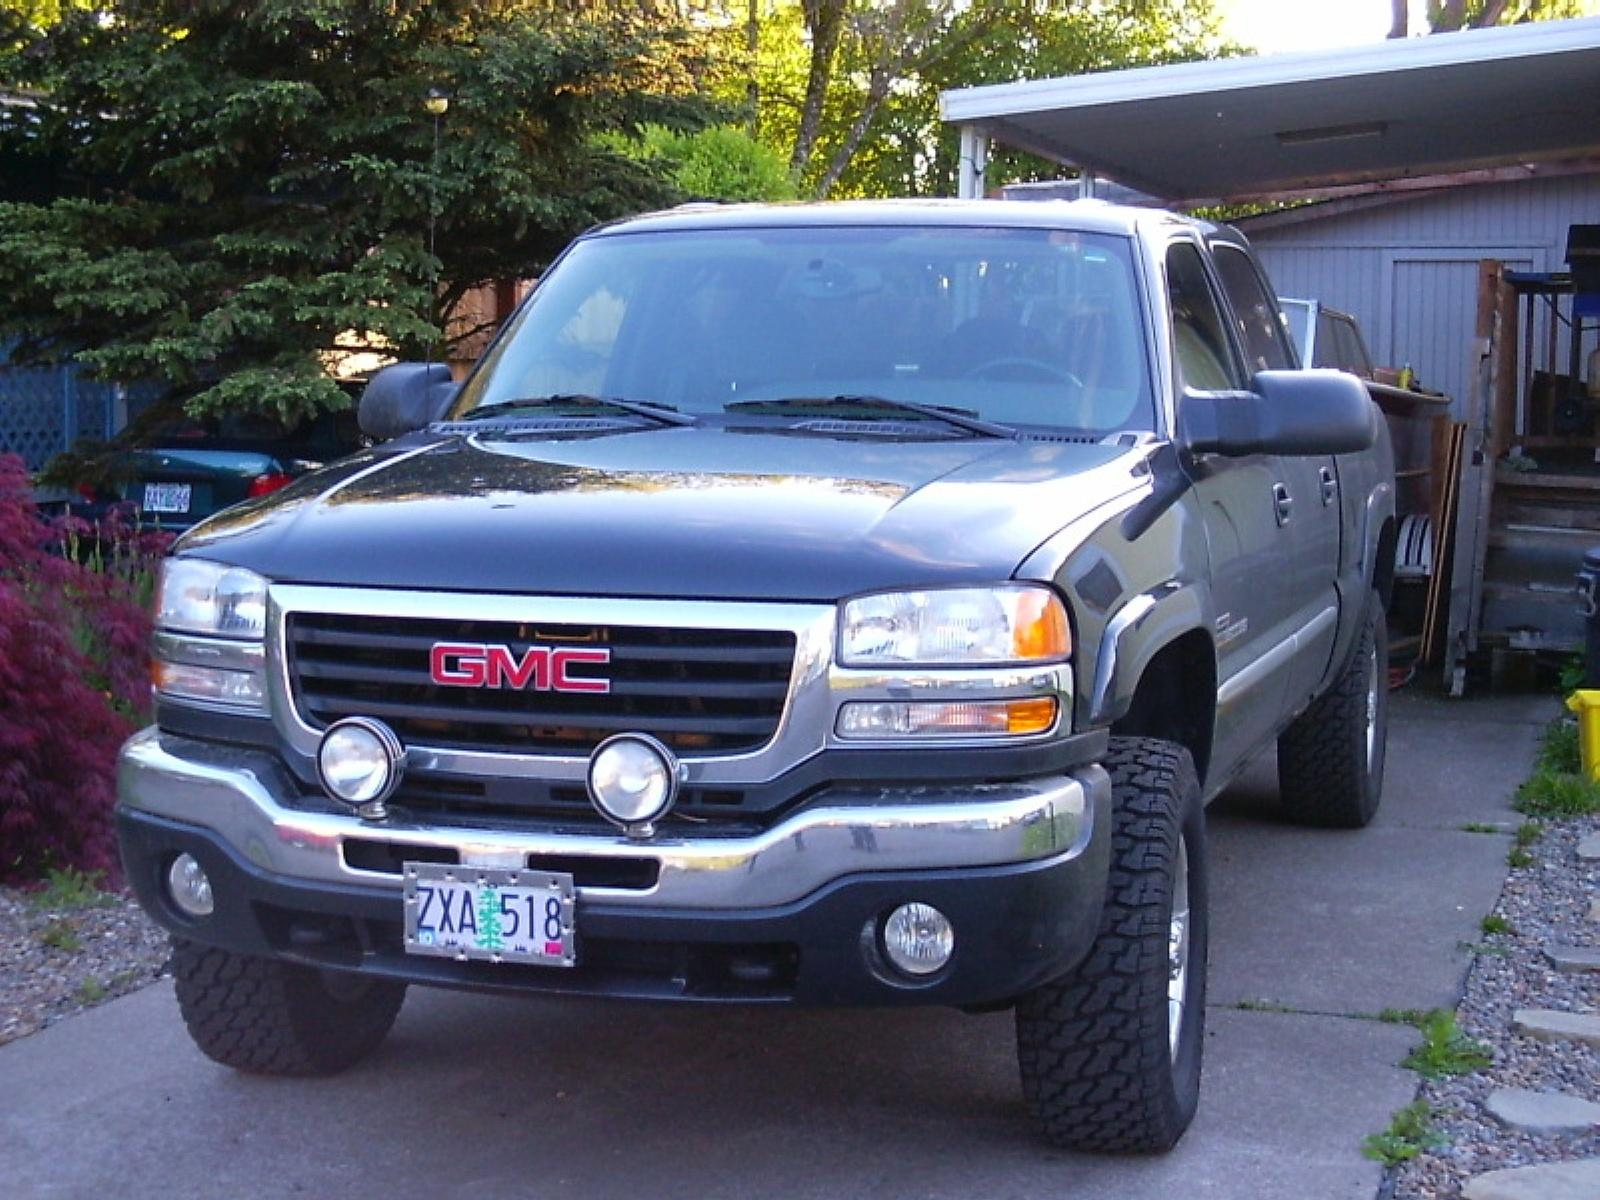 2004 gmc sierra 2500hd information and photos zombiedrive rh zombdrive com 2004 gmc sierra manual pdf 2004 gmc sierra manual pdf